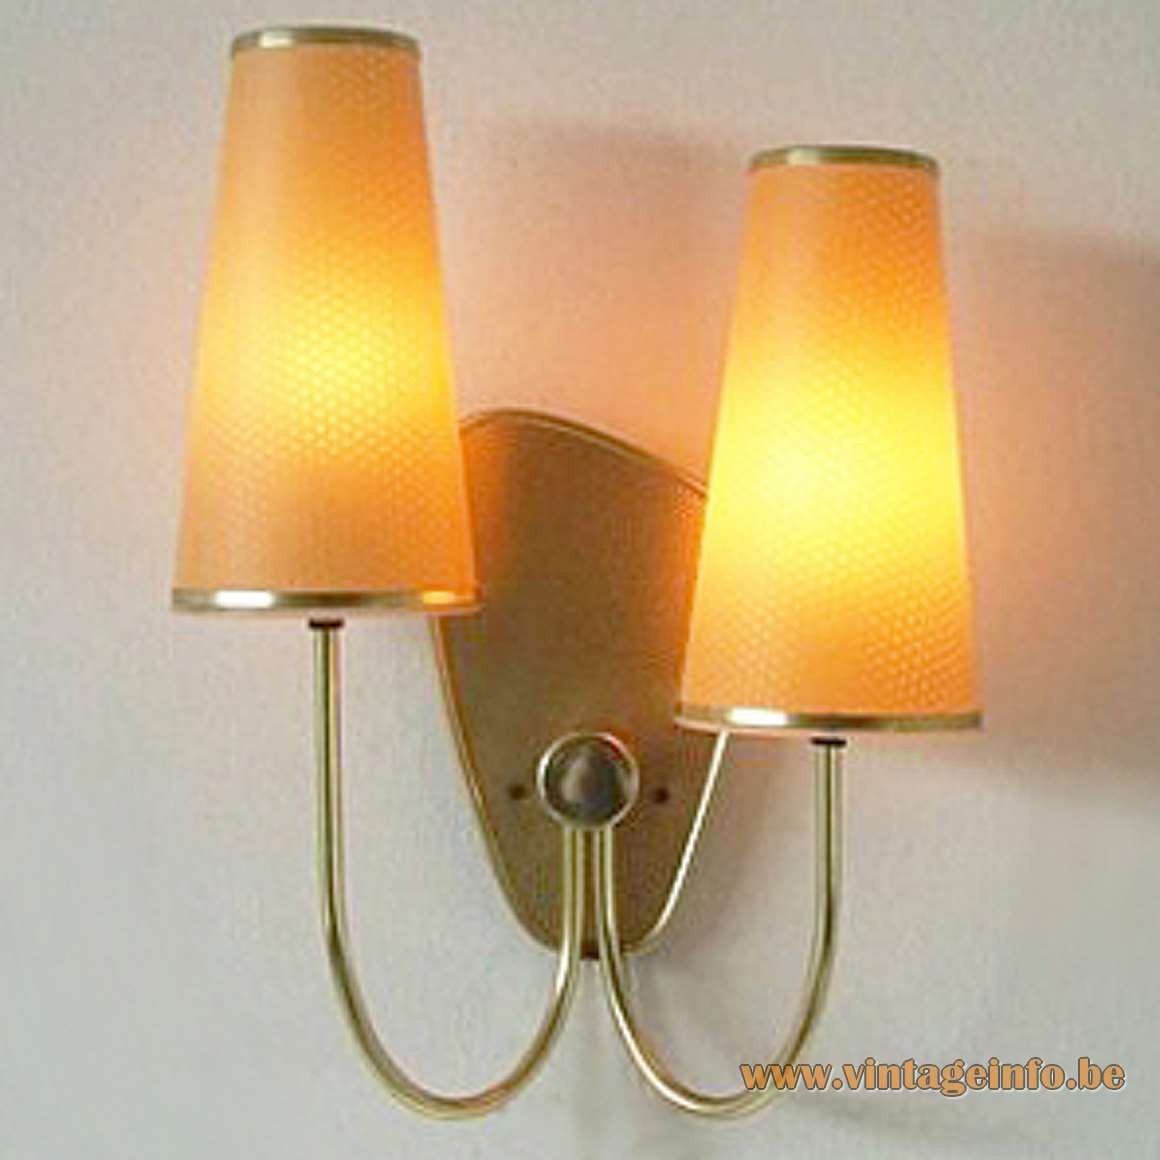 1950s ERCO Conical Cylinders Wall Lamp made of plastic with curved rods